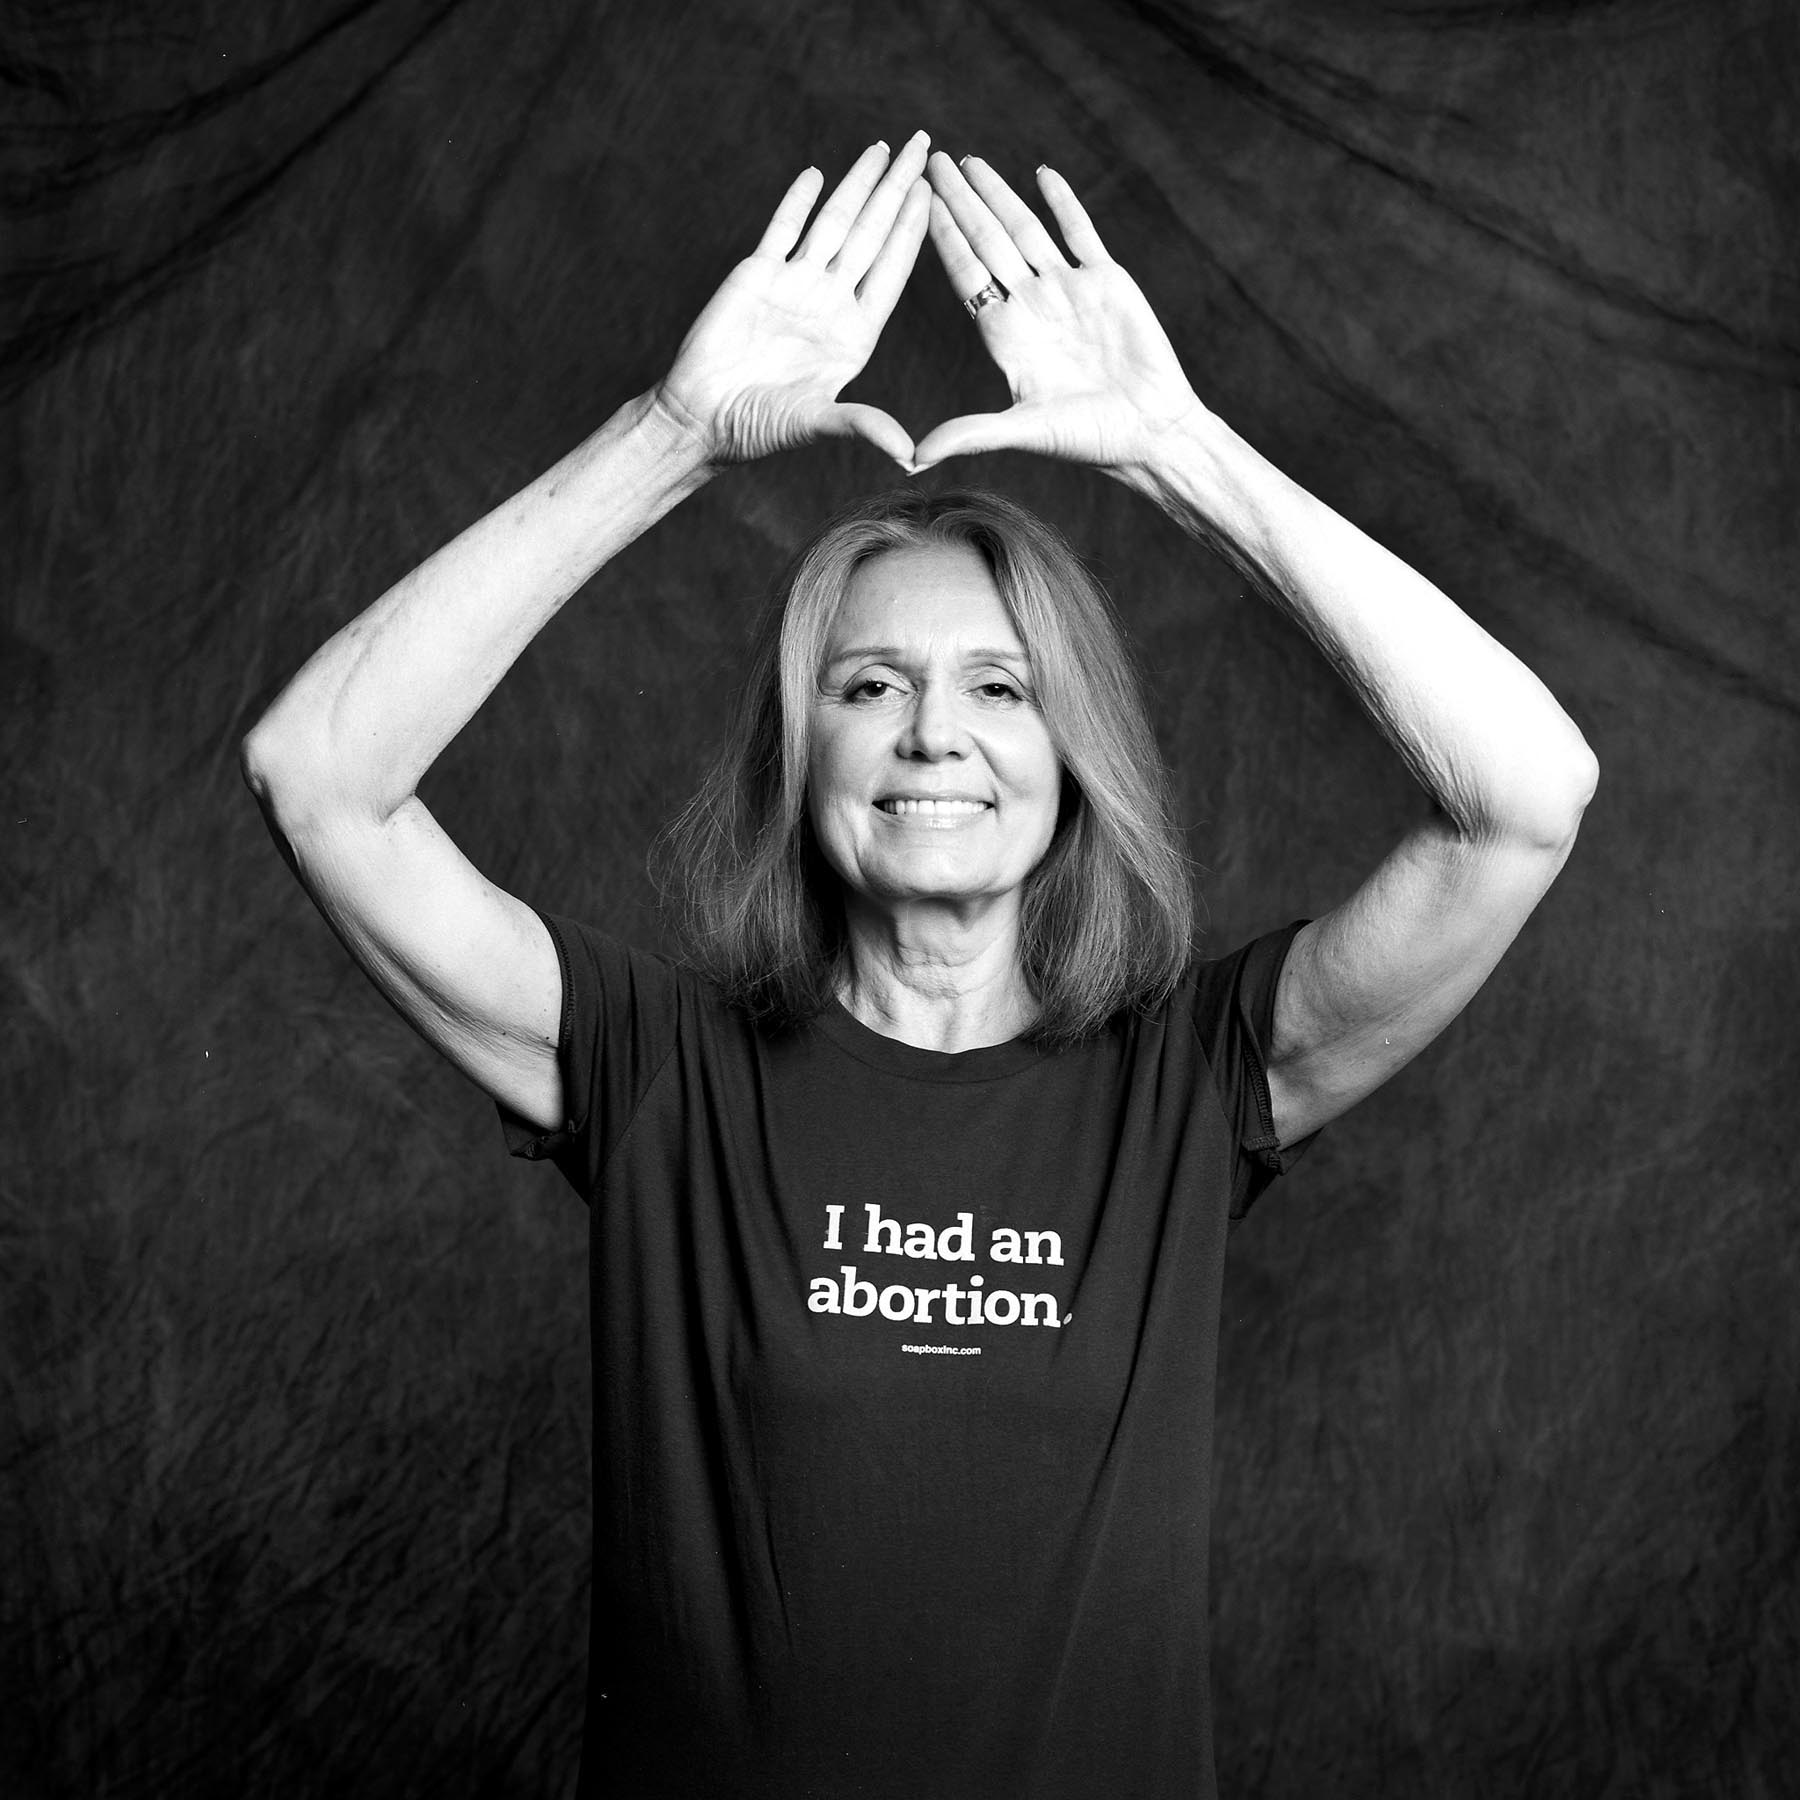 Gloria Steinem, 71 (at the time the photo was taken), entered the feminist movement the day she covered Red Stockings abortion speak-out for New York magazine, and finally owned the abortion she had had several years earlier. She describes her abortion as the first time she acted in her own life, rather than let things happen to her. She had her abortion when she was 22. Gloria went on to found several pro-choice organizations, including Voters for Choice and Ms. Magazine and considers reproductive freedom to be the most significant contribution of the 2nd wave feminism.